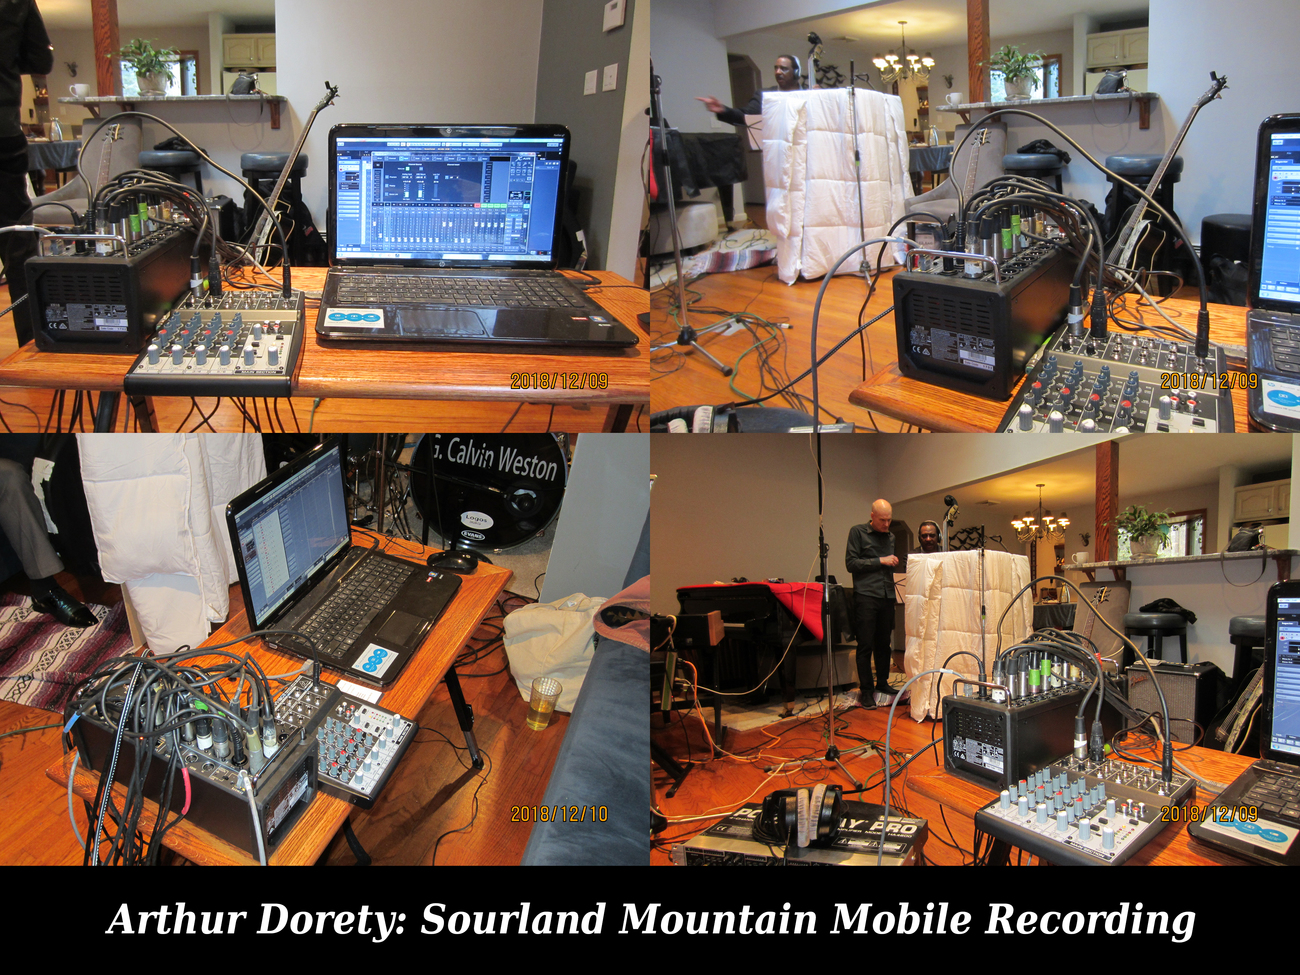 Home Recording 1 of 4 by adorety